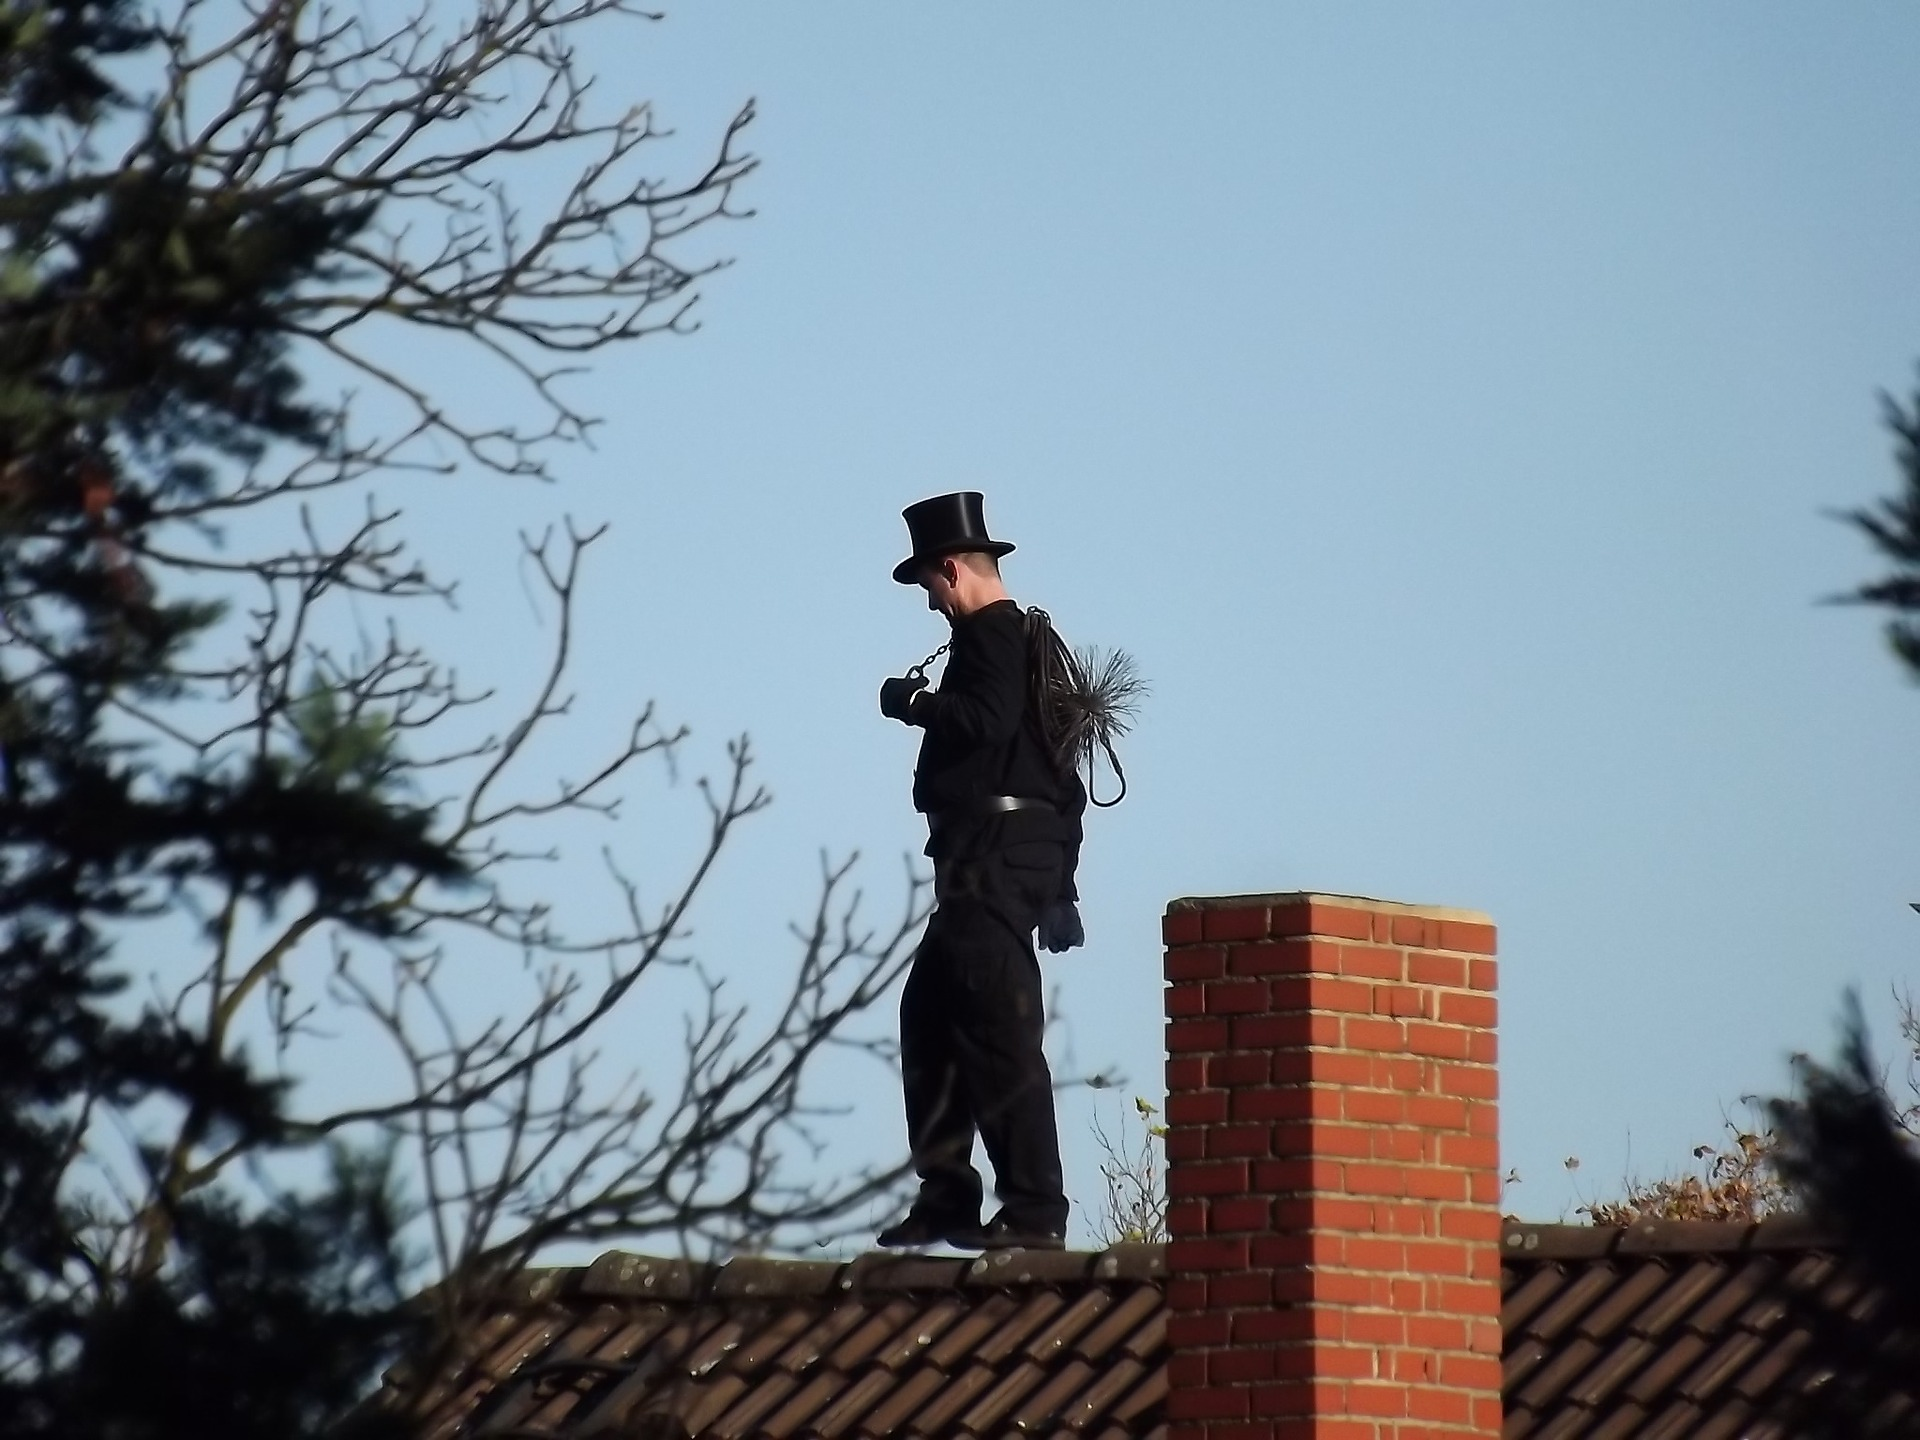 chimney-sweep-647678_1920 - Unitedhoodcleaning